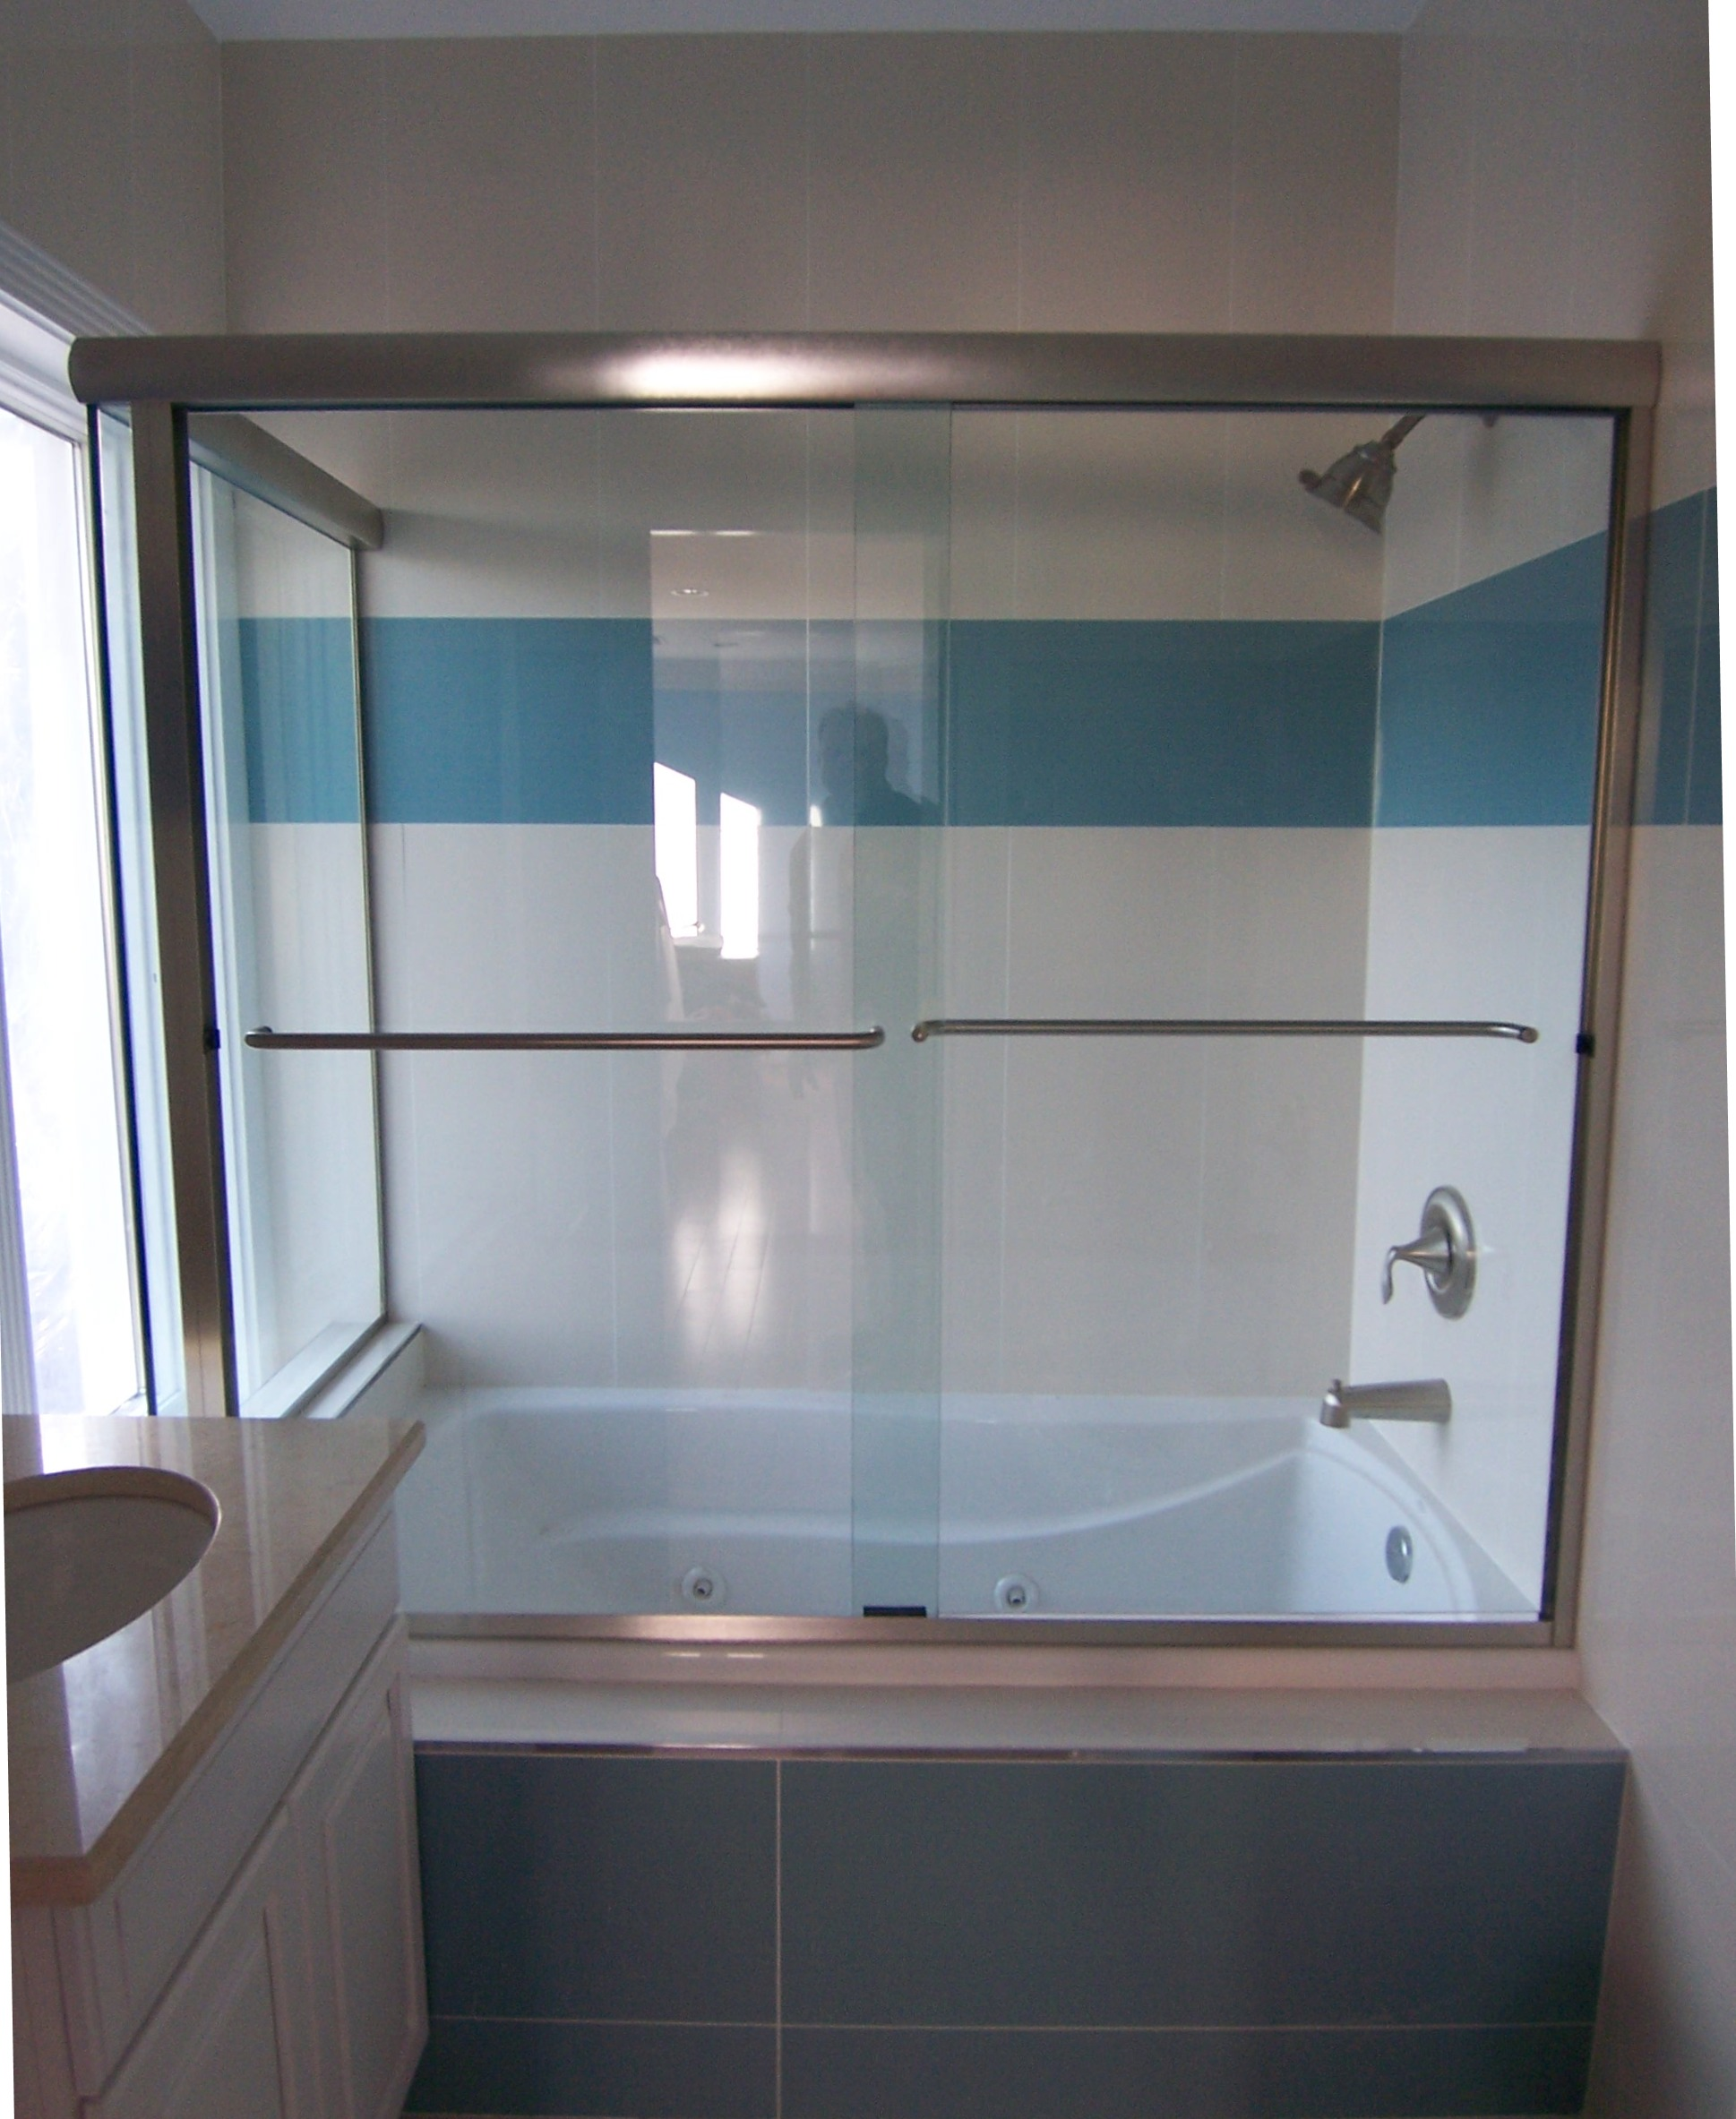 Sliding Door | Shower Door King | Shower Door Installations